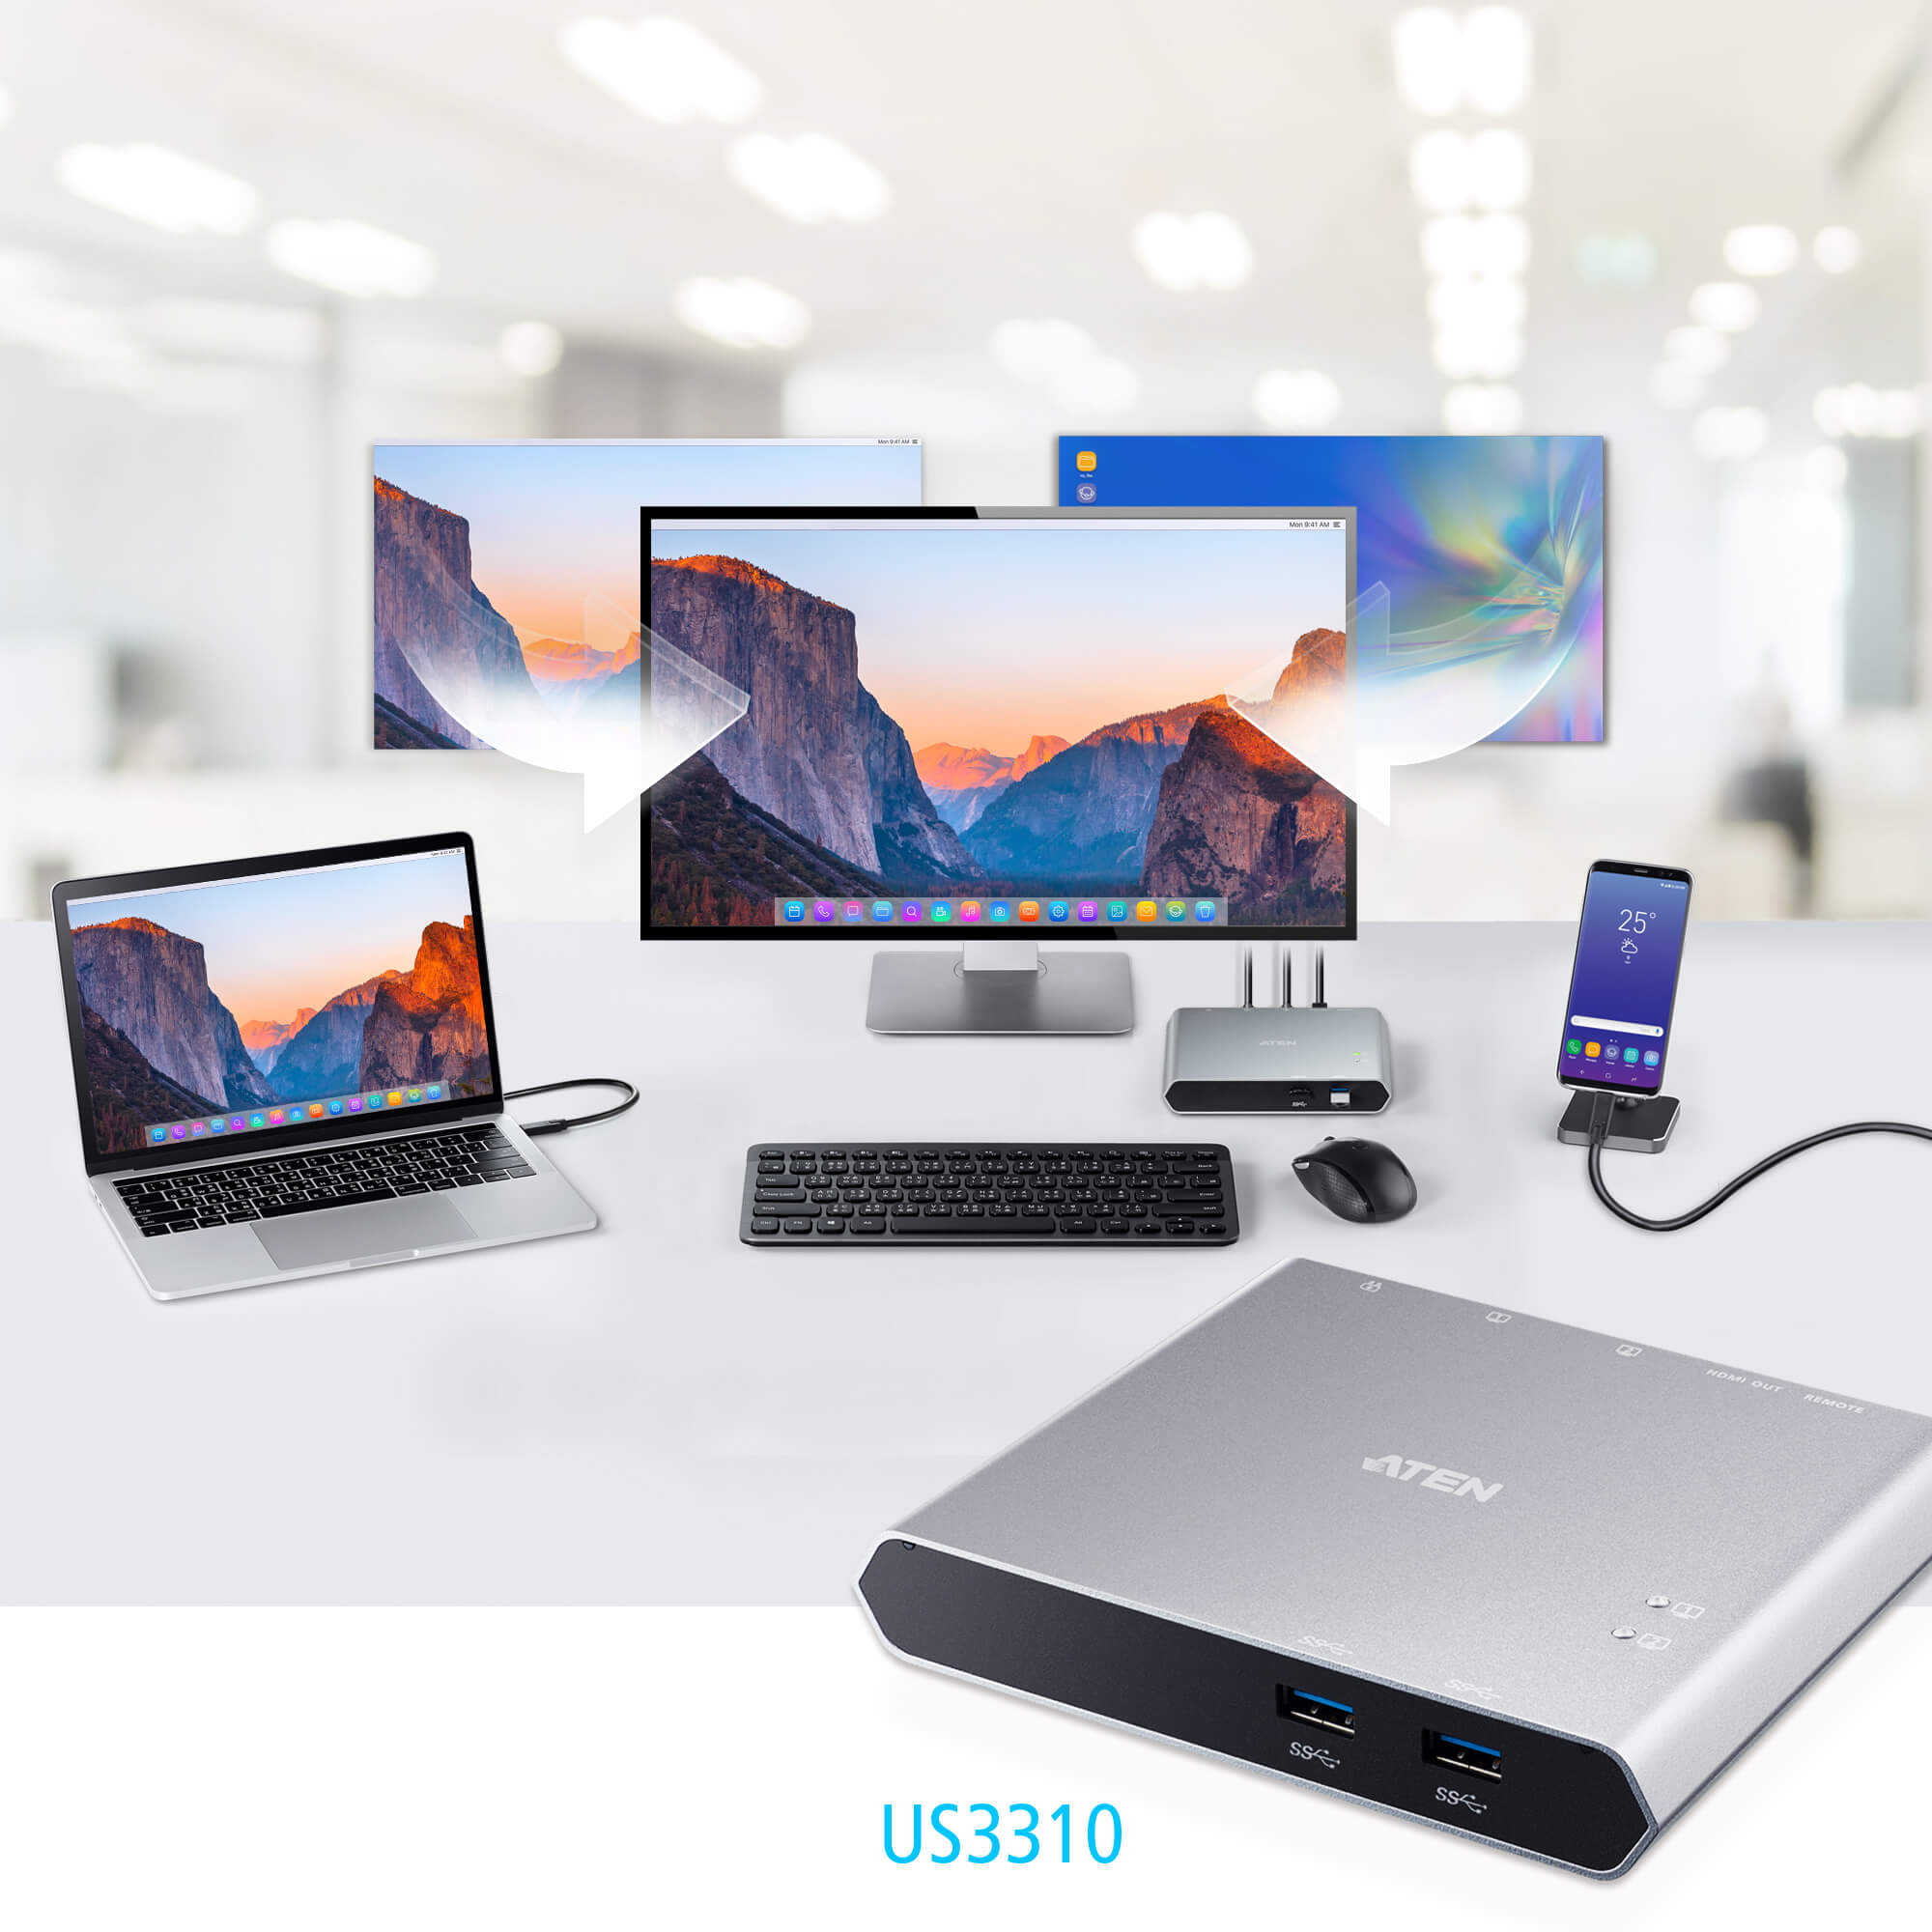 2-Port USB-C Gen 1 Dock Switch mit Stromdurchgang-4